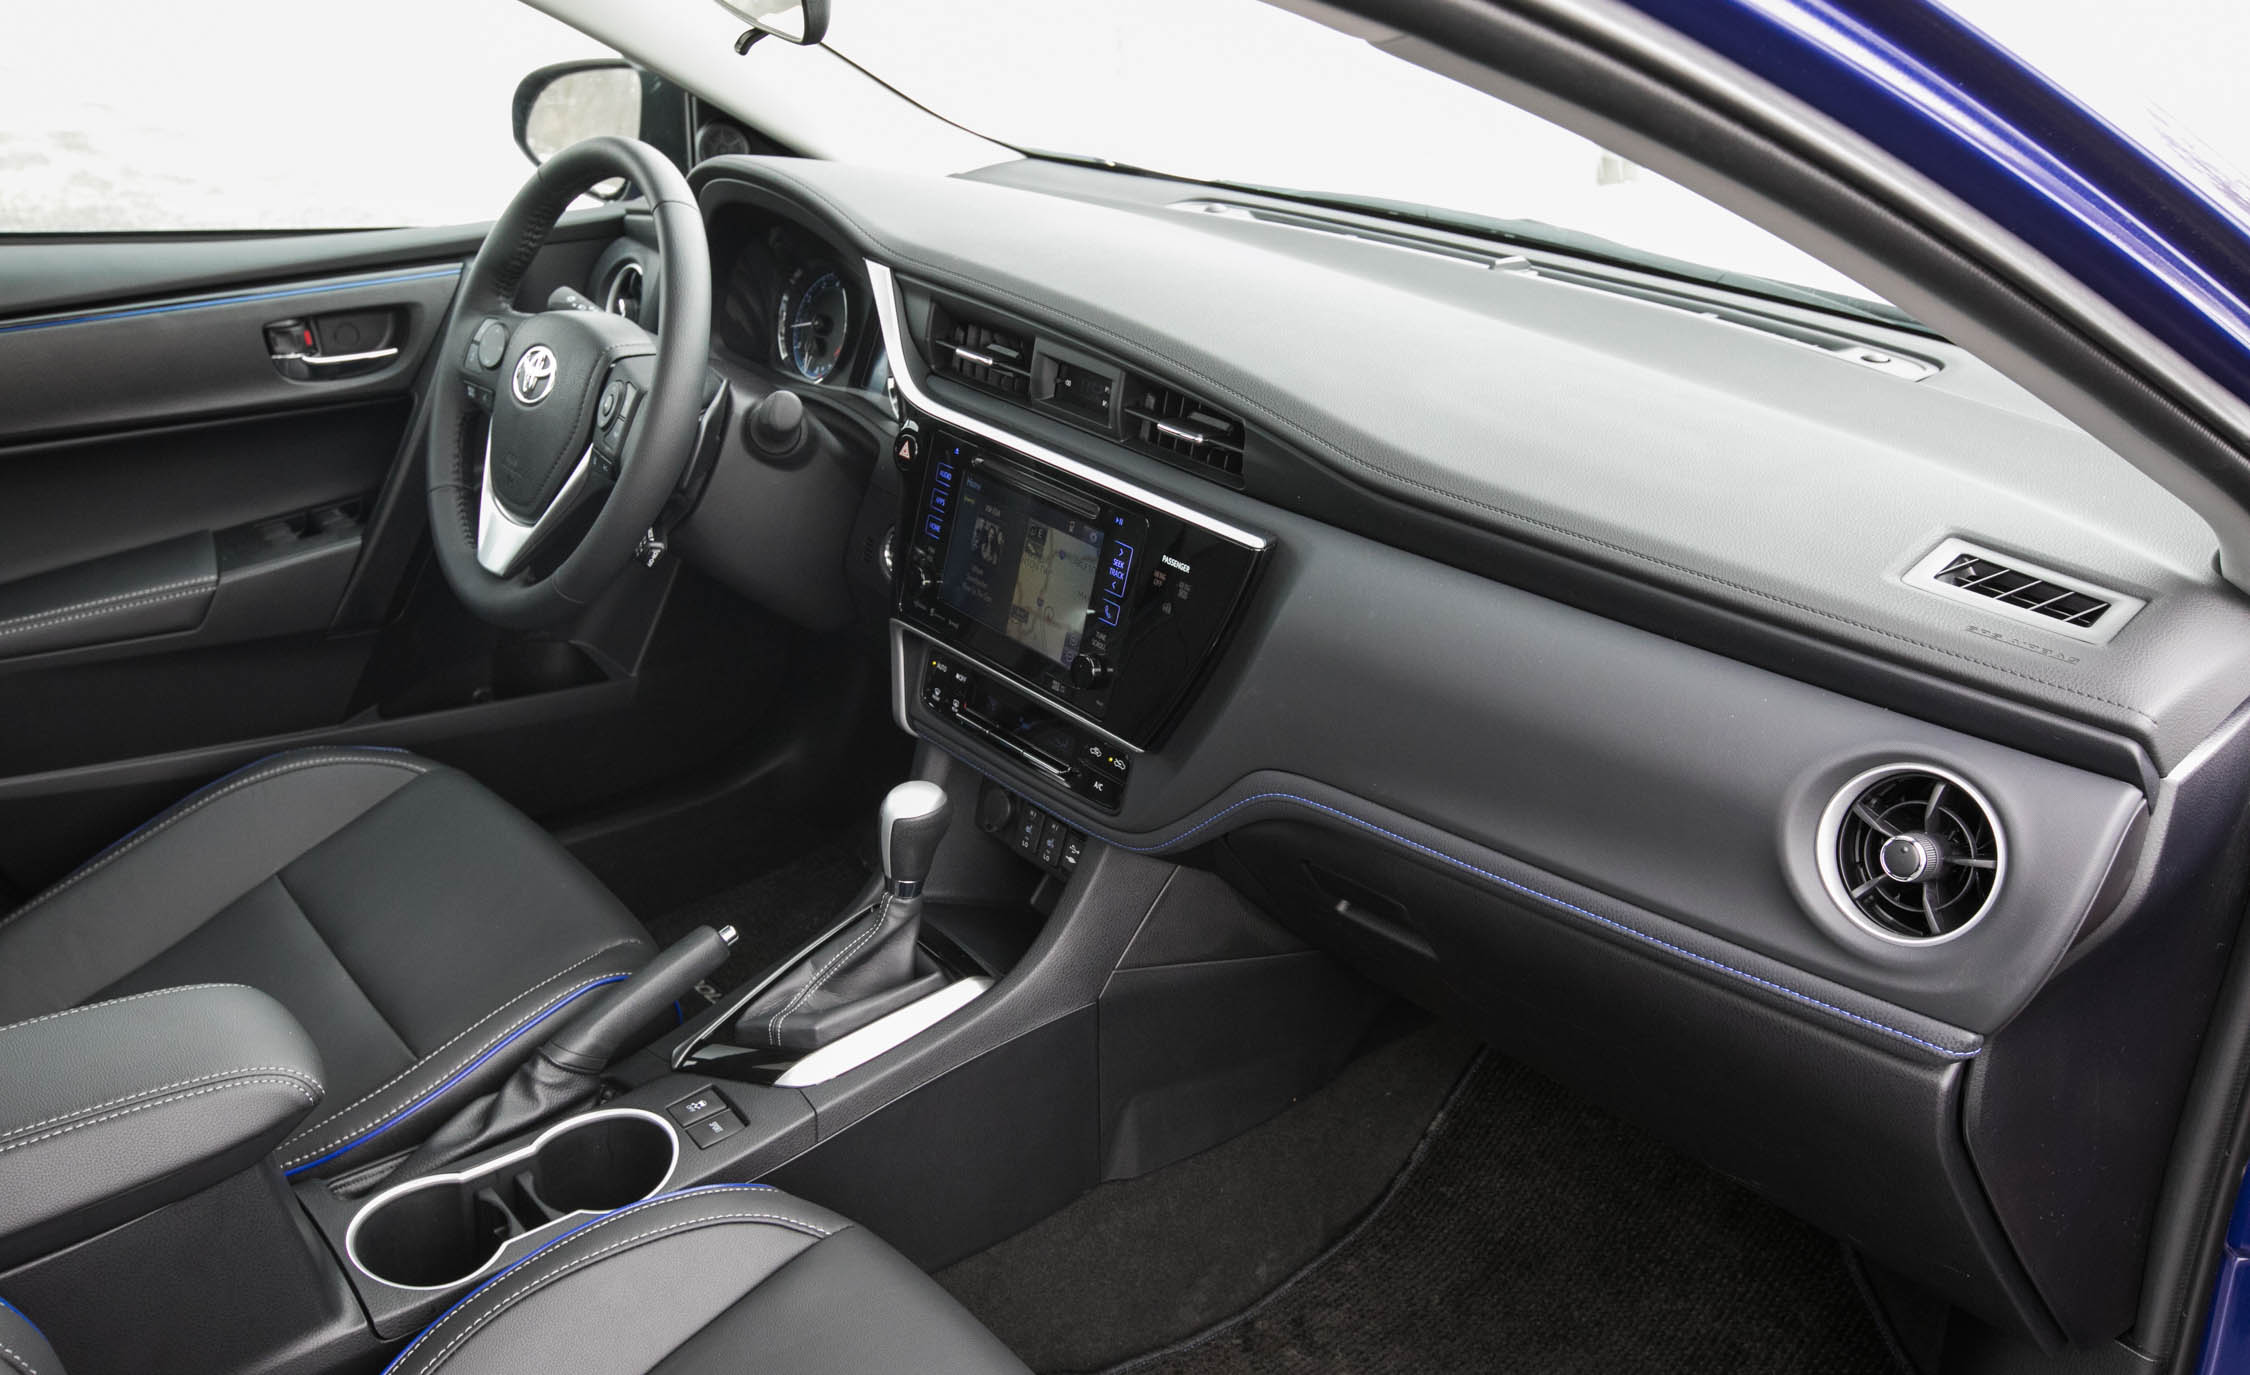 2017 Toyota Corolla XSE Interior Dashboard (Photo 51 of 75)